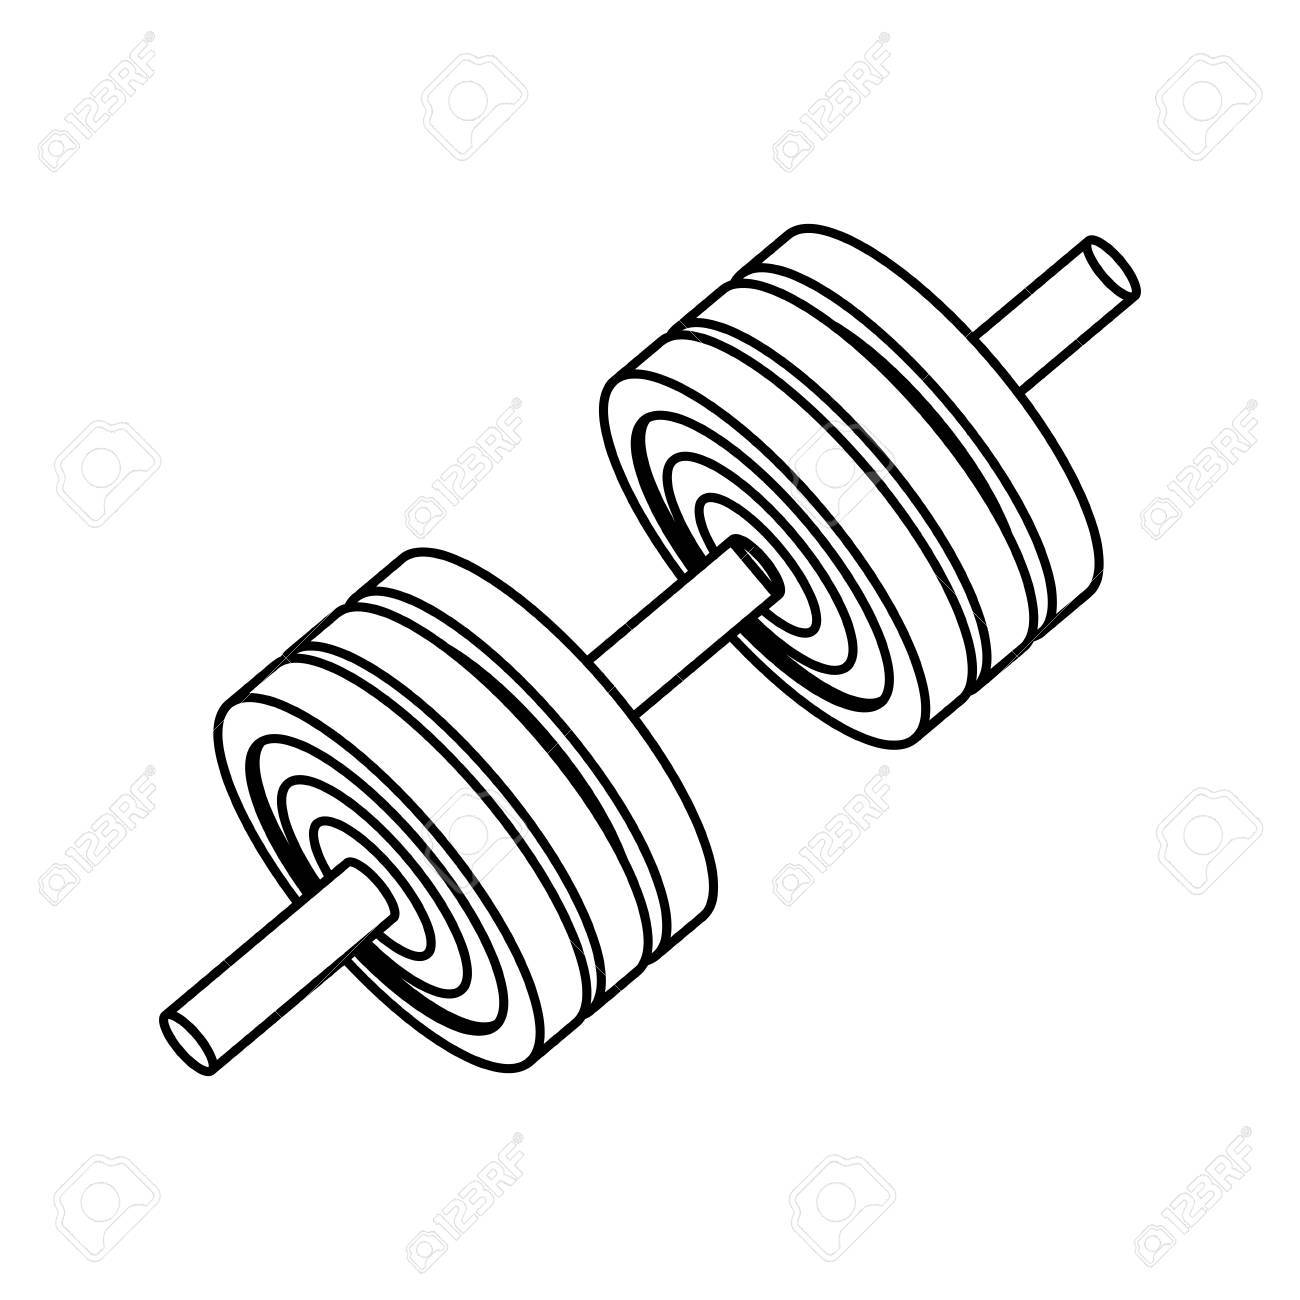 Gym And Fitness Equipment Icon Vector Illustration Graphic Design Royalty Free Cliparts Vectors And Stock Illustration Image 76272144